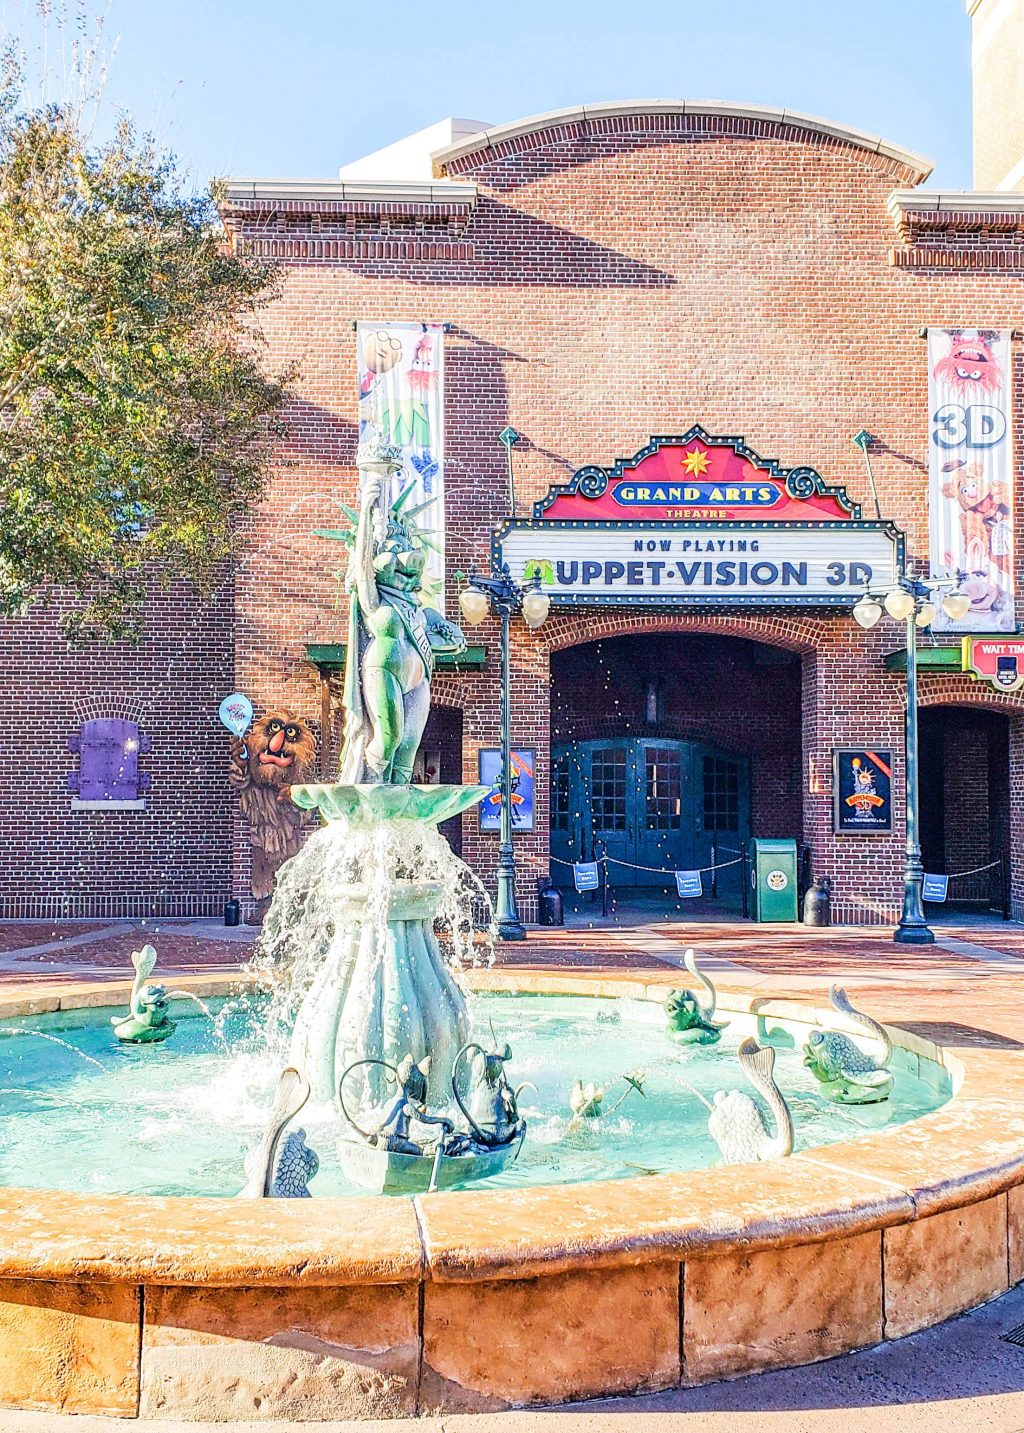 A large fountain in front of Muppet Vision 3D